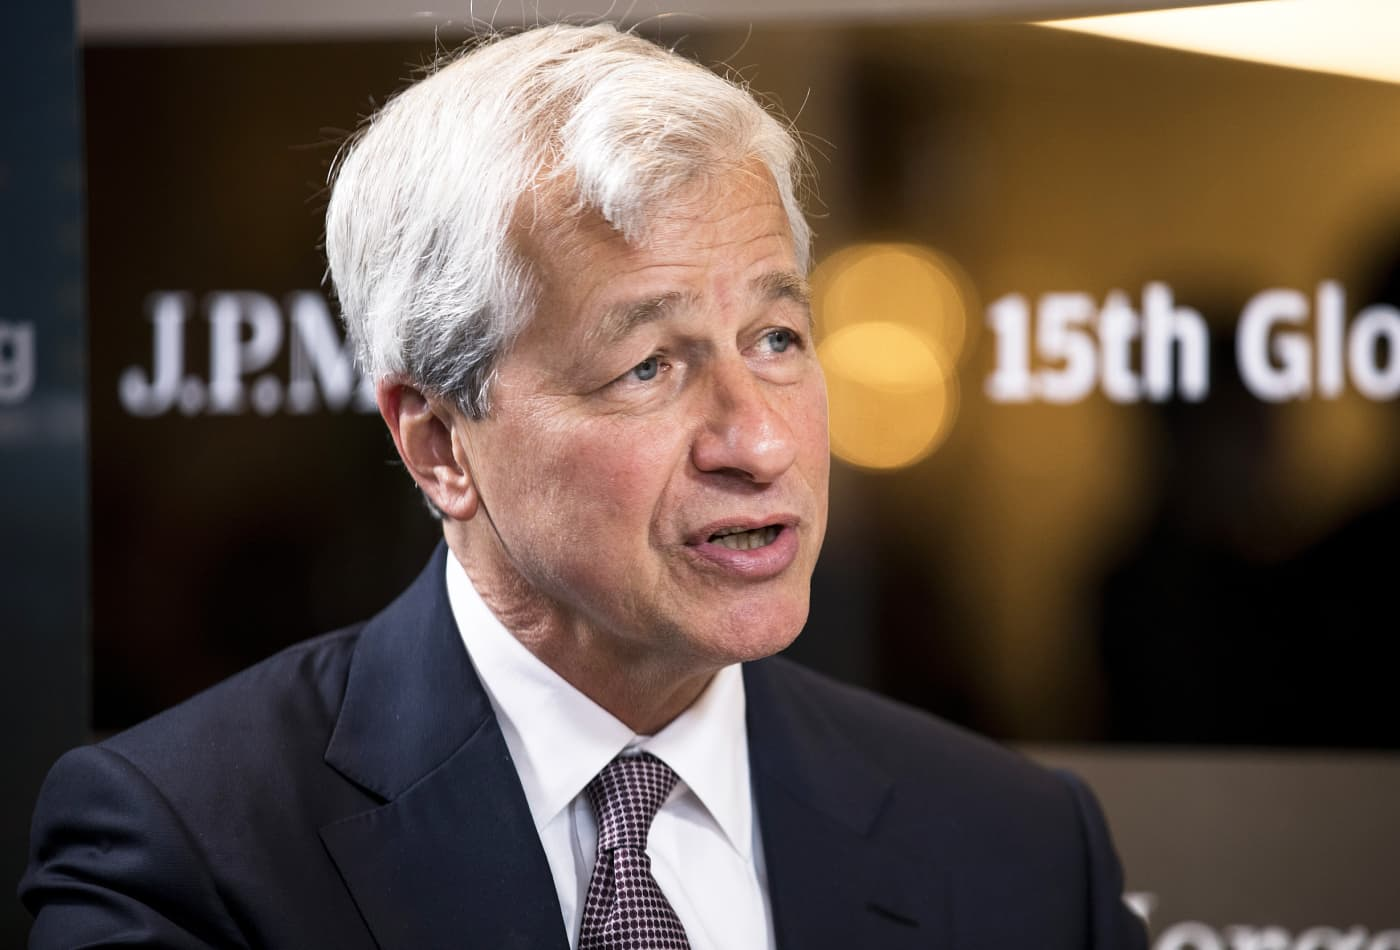 Long-term negative rates have 'adverse consequences' we don't fully understand, says Jamie Dimon